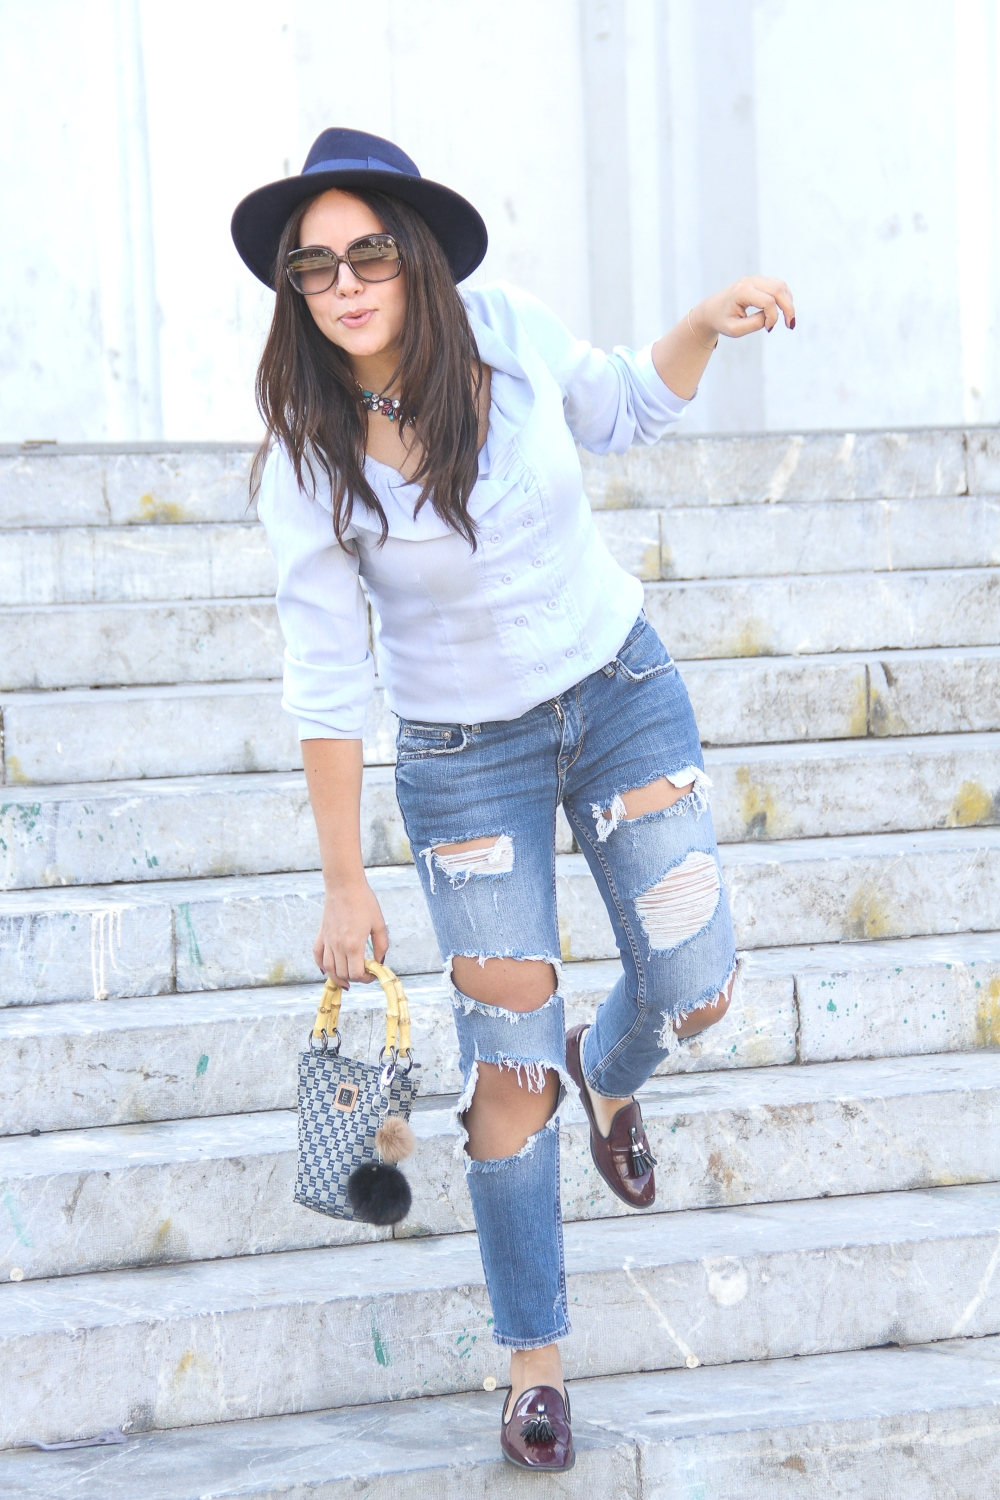 hat-addict-blog-mode-chiccarpediem-7